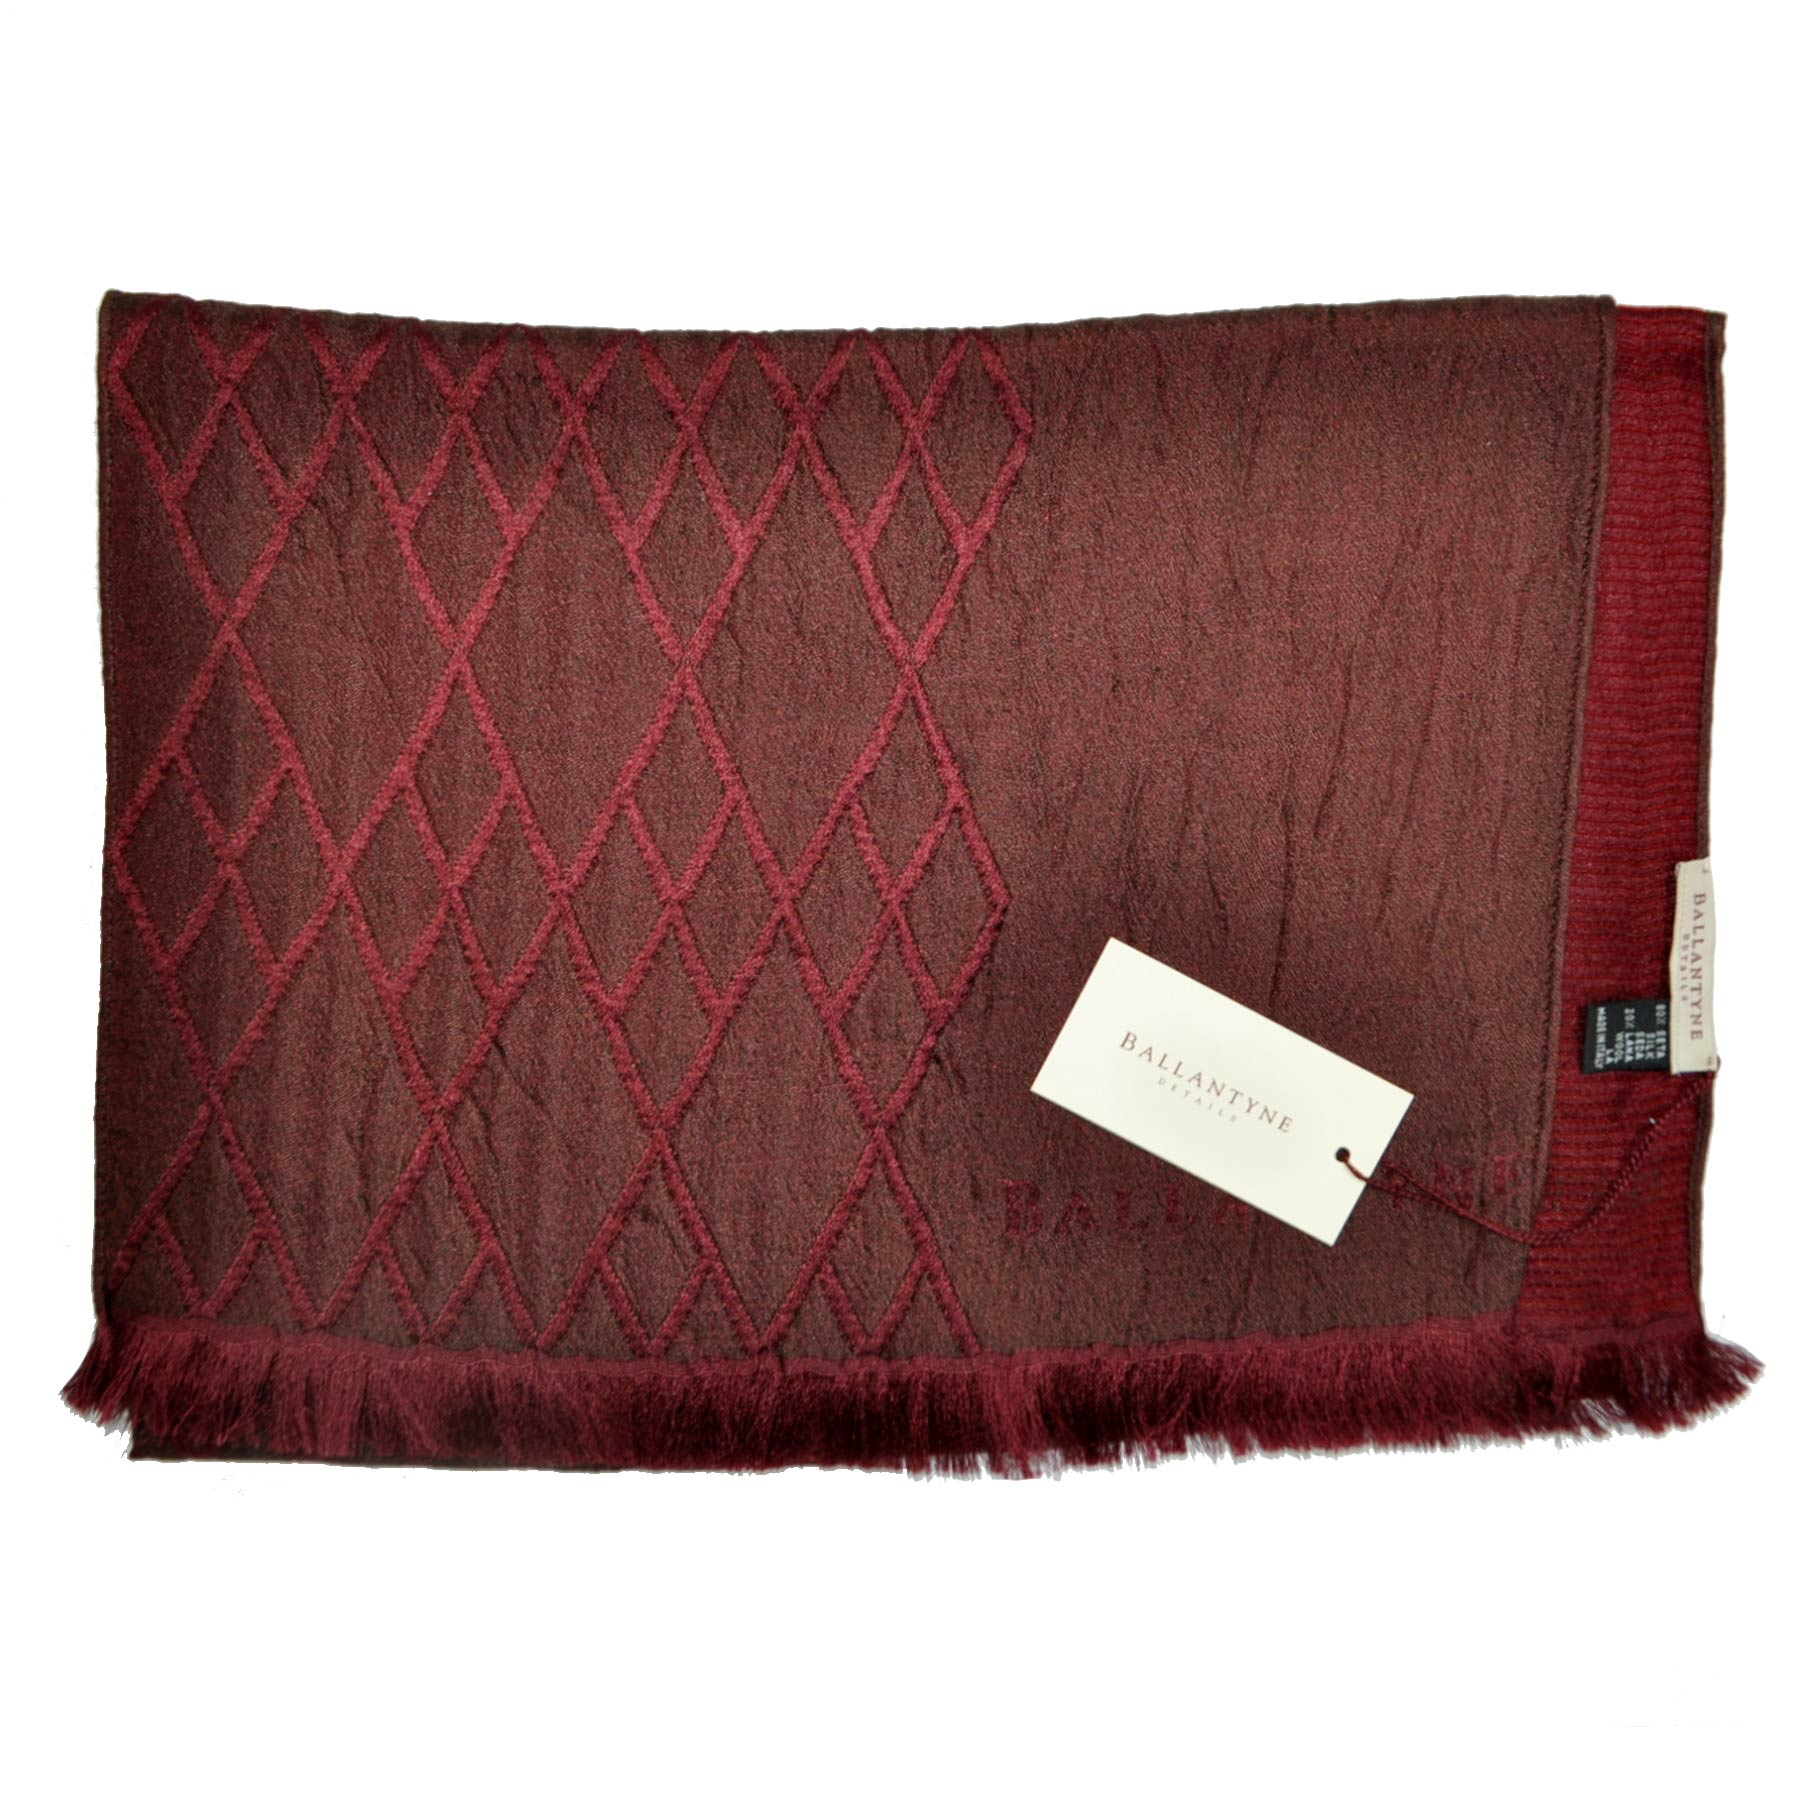 Ballantyne Scarf Burgundy Brown Argyle Wool Silk Shawl